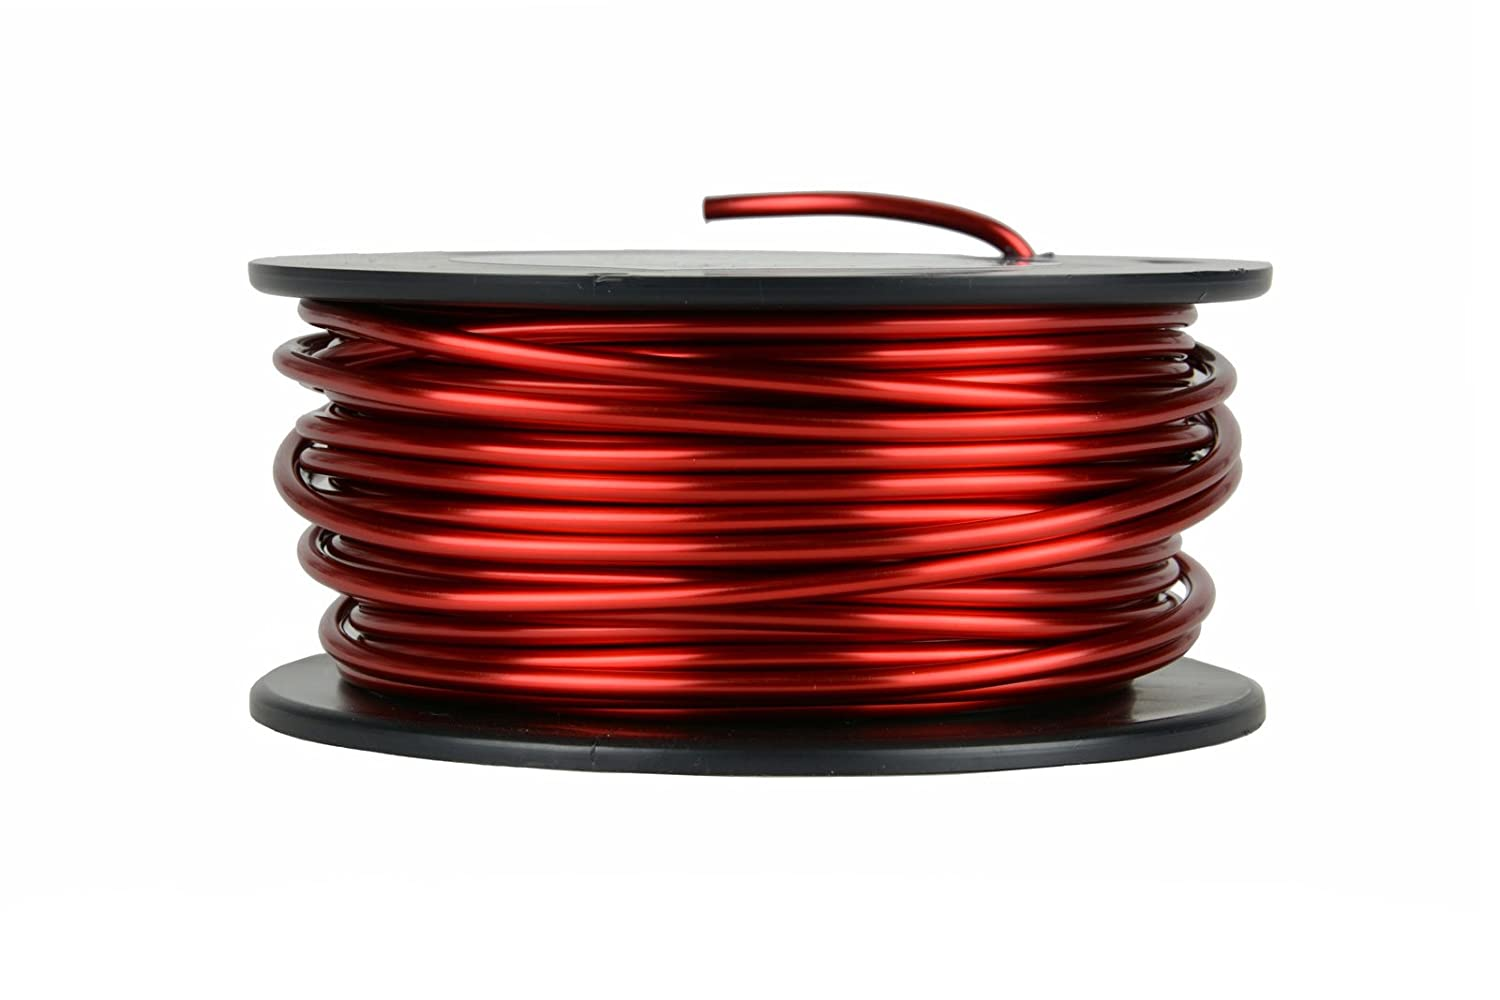 Amazon.com: TEMCo 10 AWG Copper Magnet Wire - 1 lb 31 ft 155°C ...